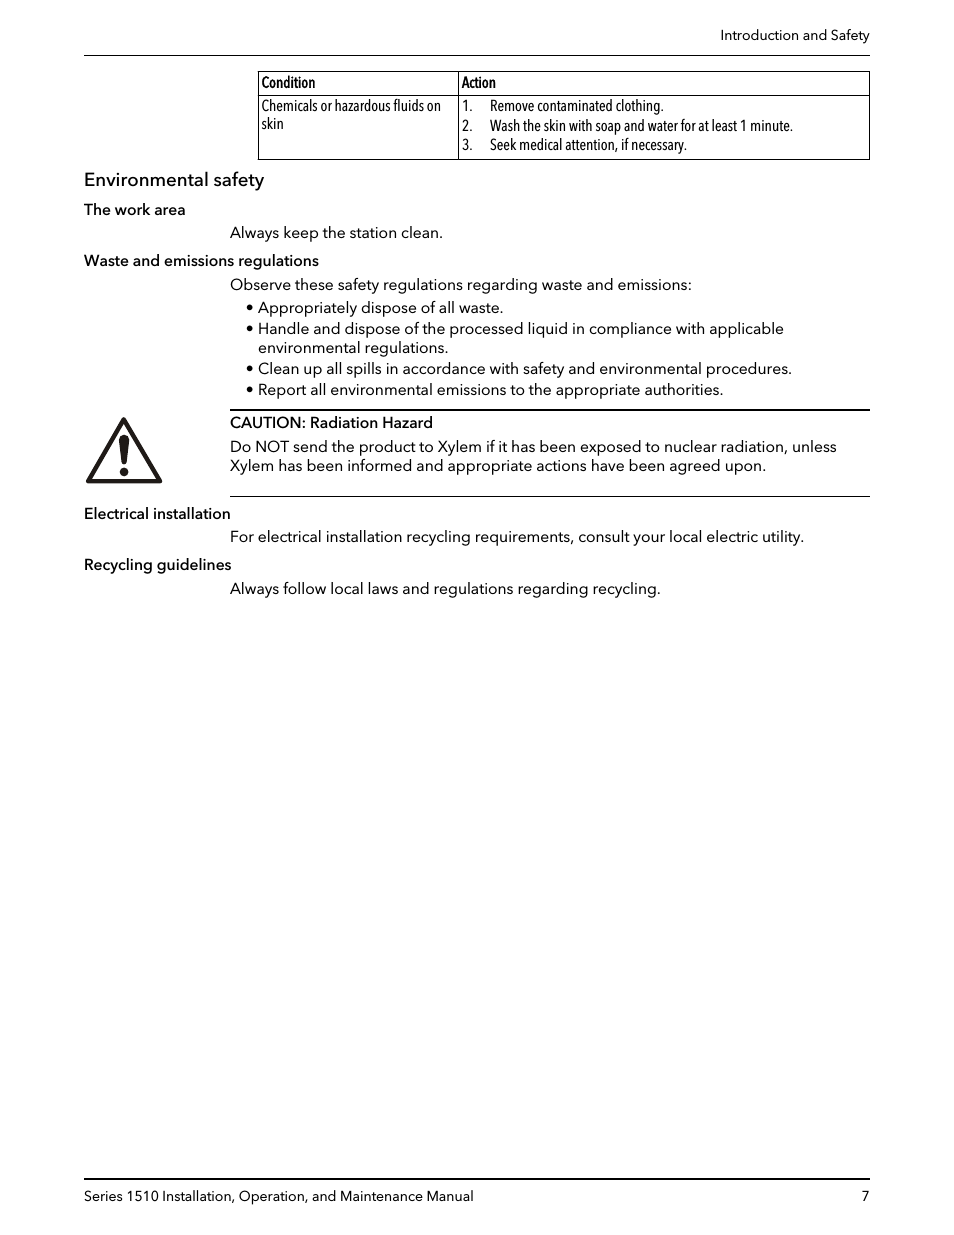 Report All Spills Caution Png - Environmental safety | Bell & Gossett P81673 REV I Series 1510 ...